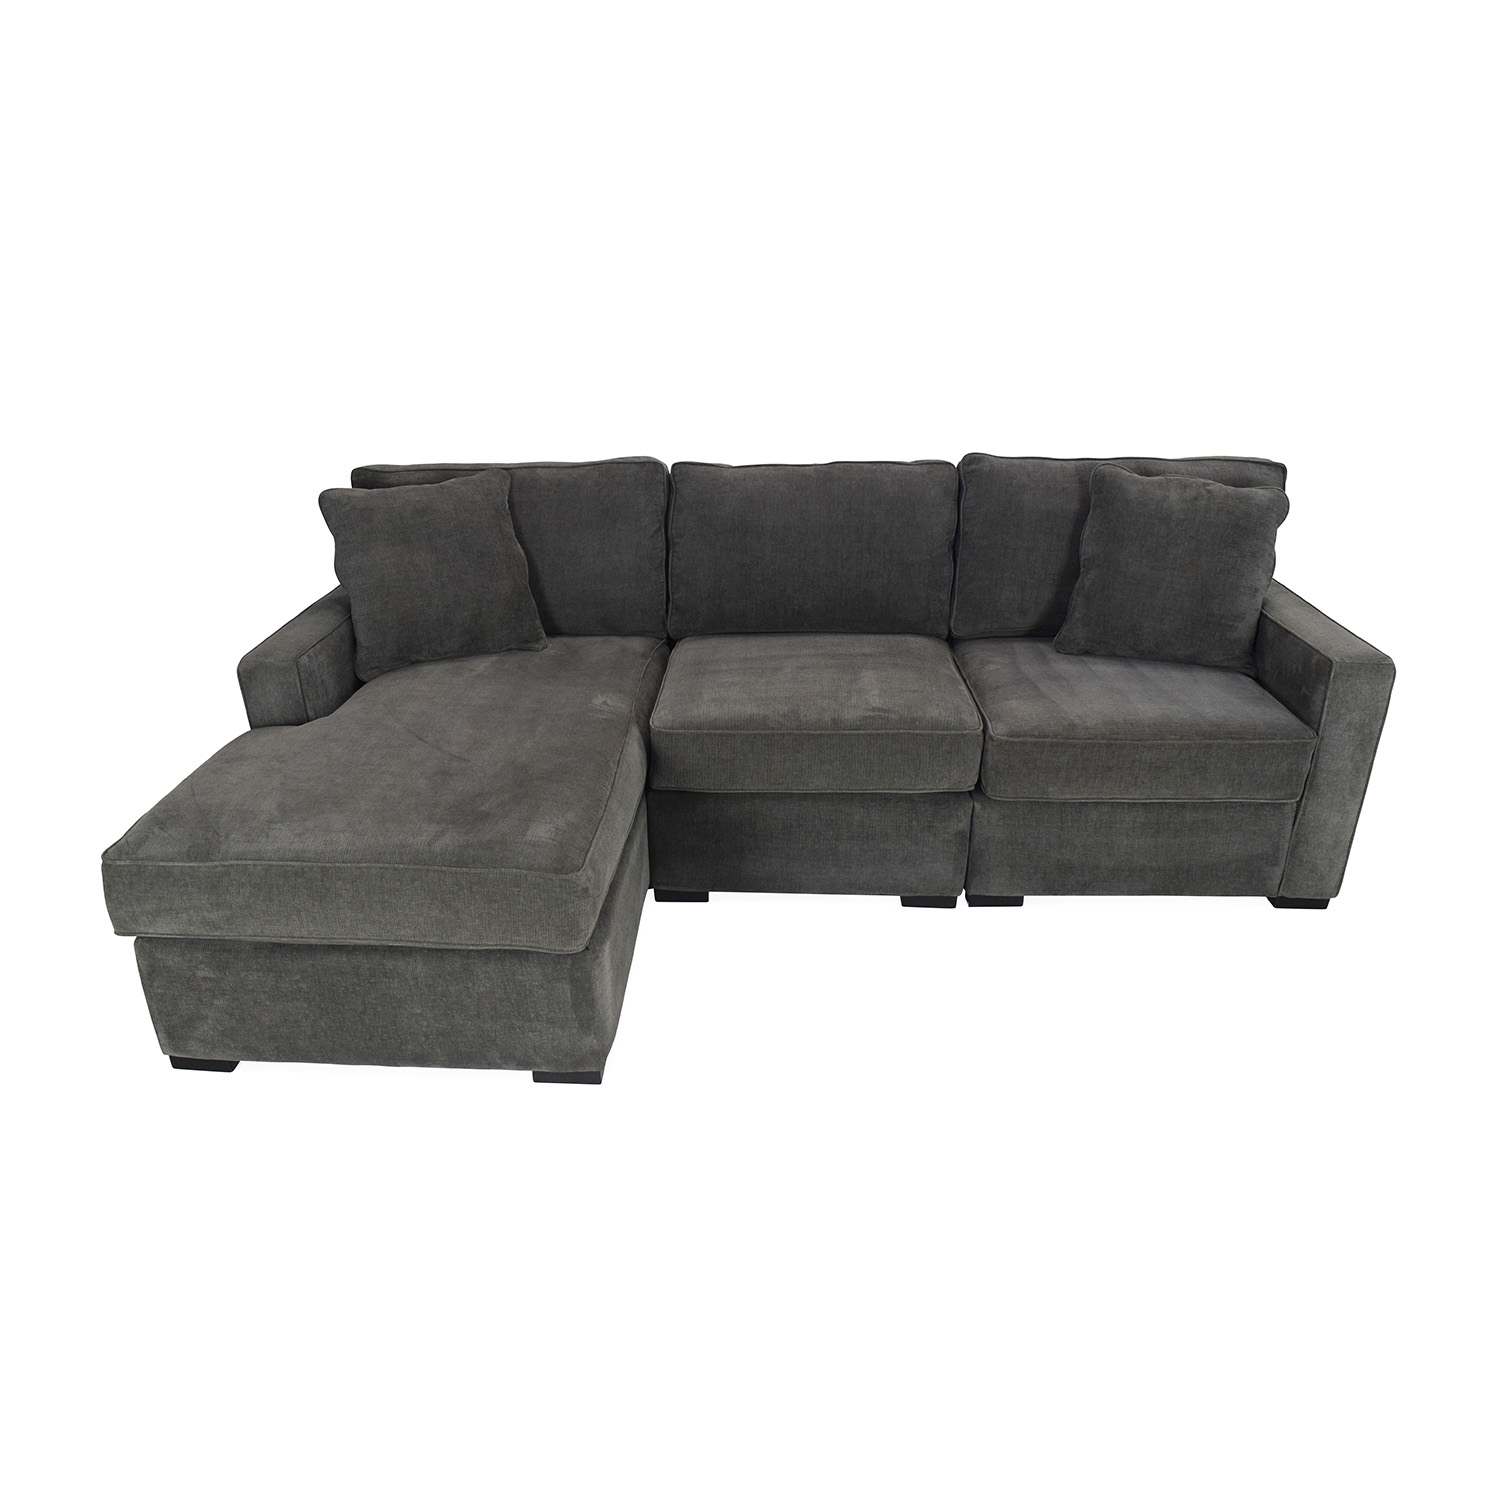 Macys Radley Sectional Sofa price